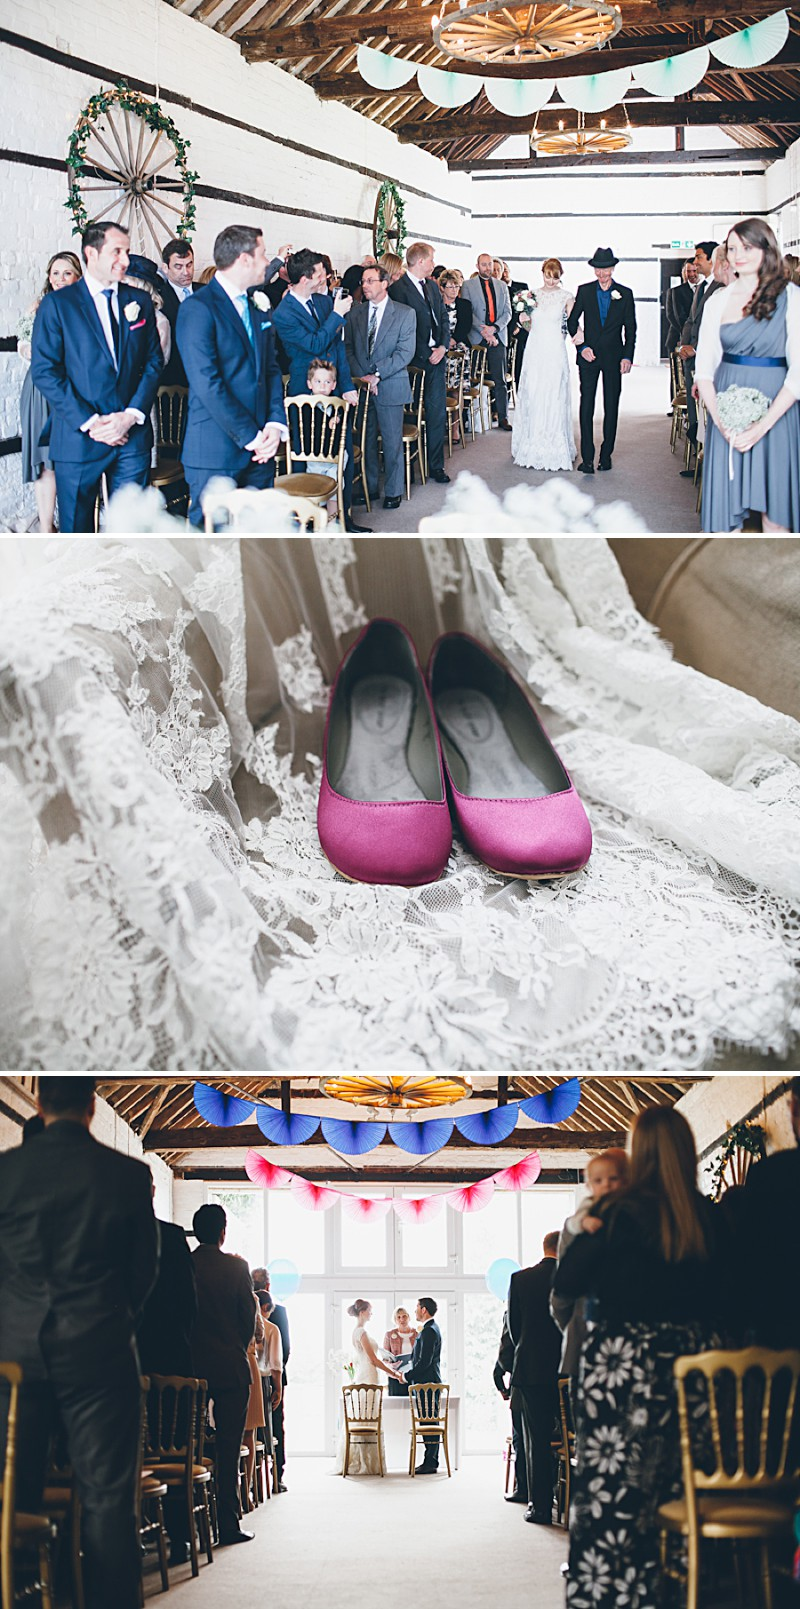 A modern contemporary barn wedding with bright colour scheme Essence of Australia dress and reiss suit.  Home made decorations and DIY elements. Photography by Lemonade Pictures_0006